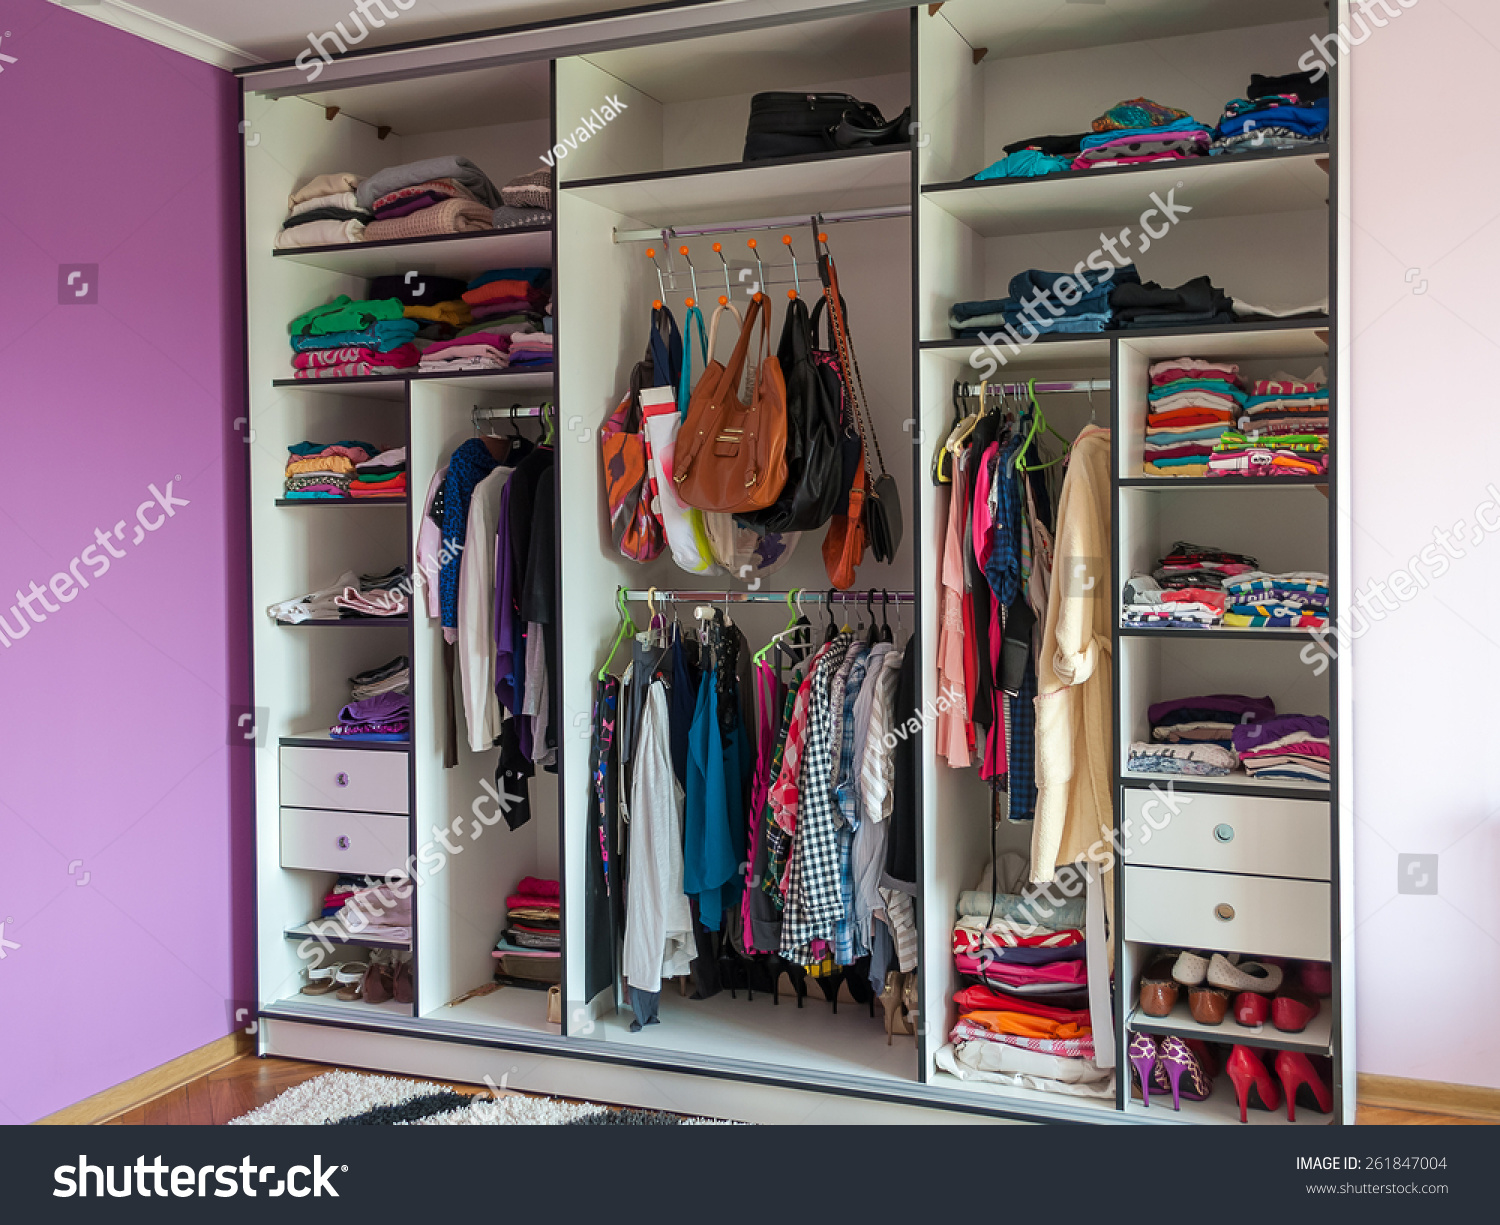 fbab41047fc Wardrobe Closet Clothes Shoes Bag One Stock Photo (Edit Now ...